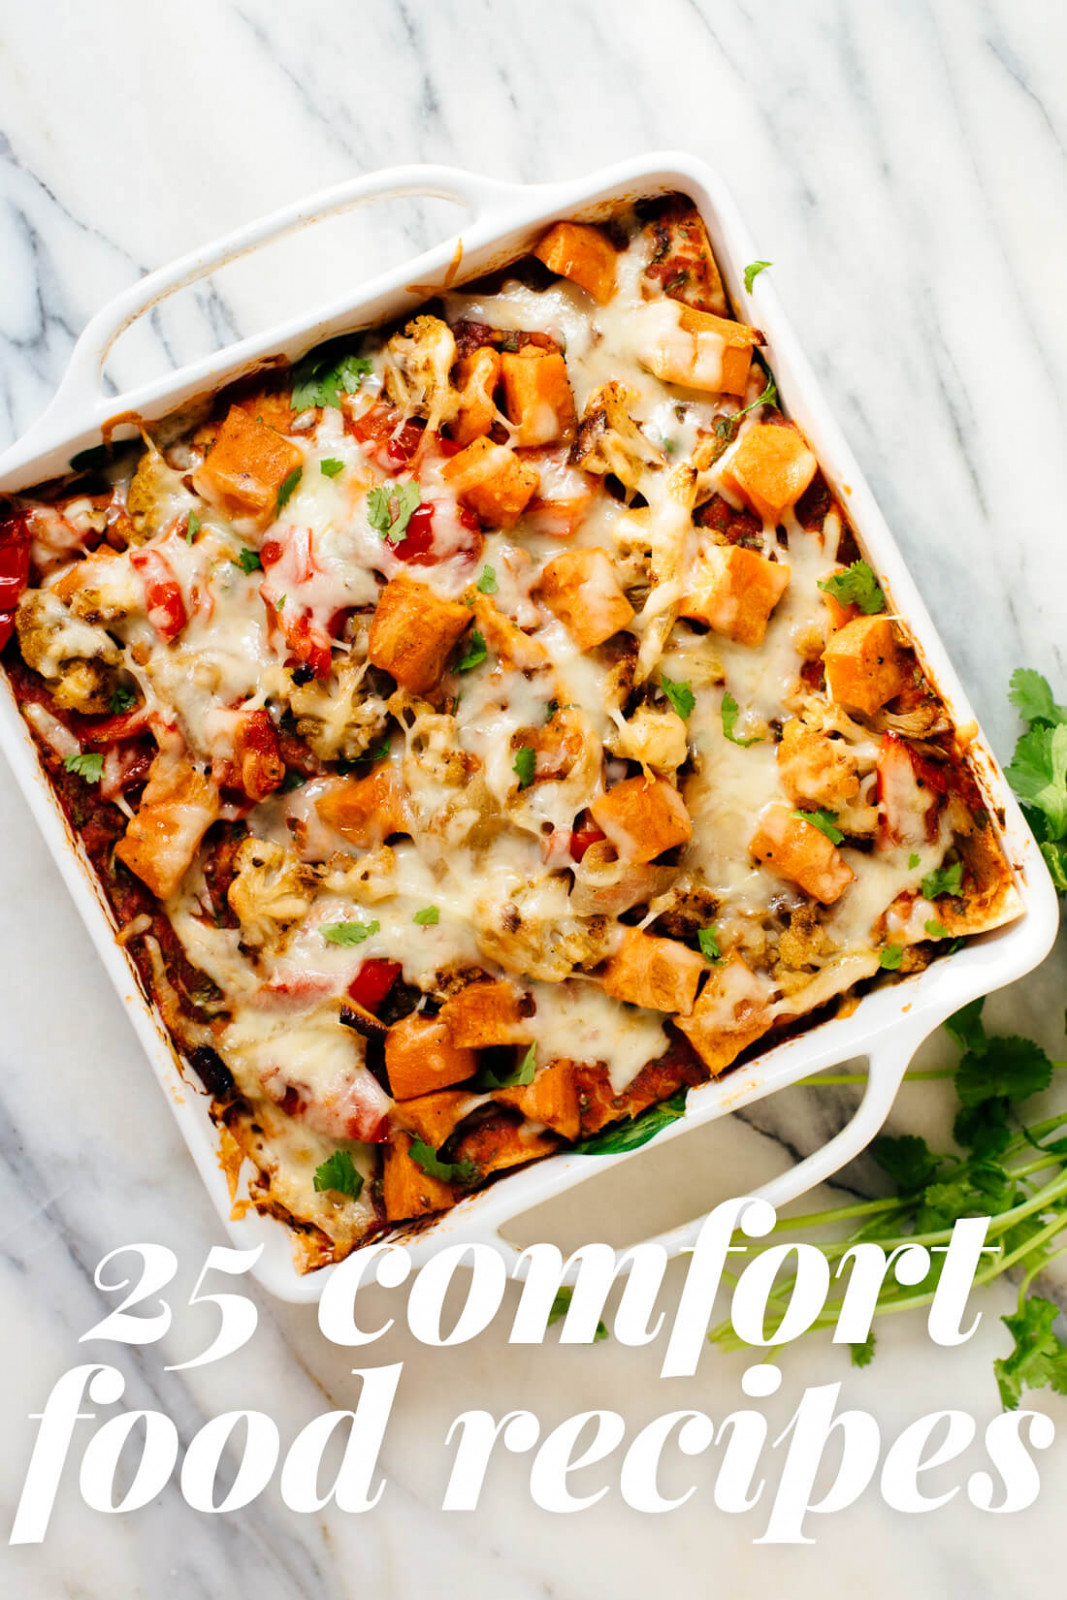 13 Healthy Comfort Food Recipes - Cookie and Kate - vegan soul food recipes